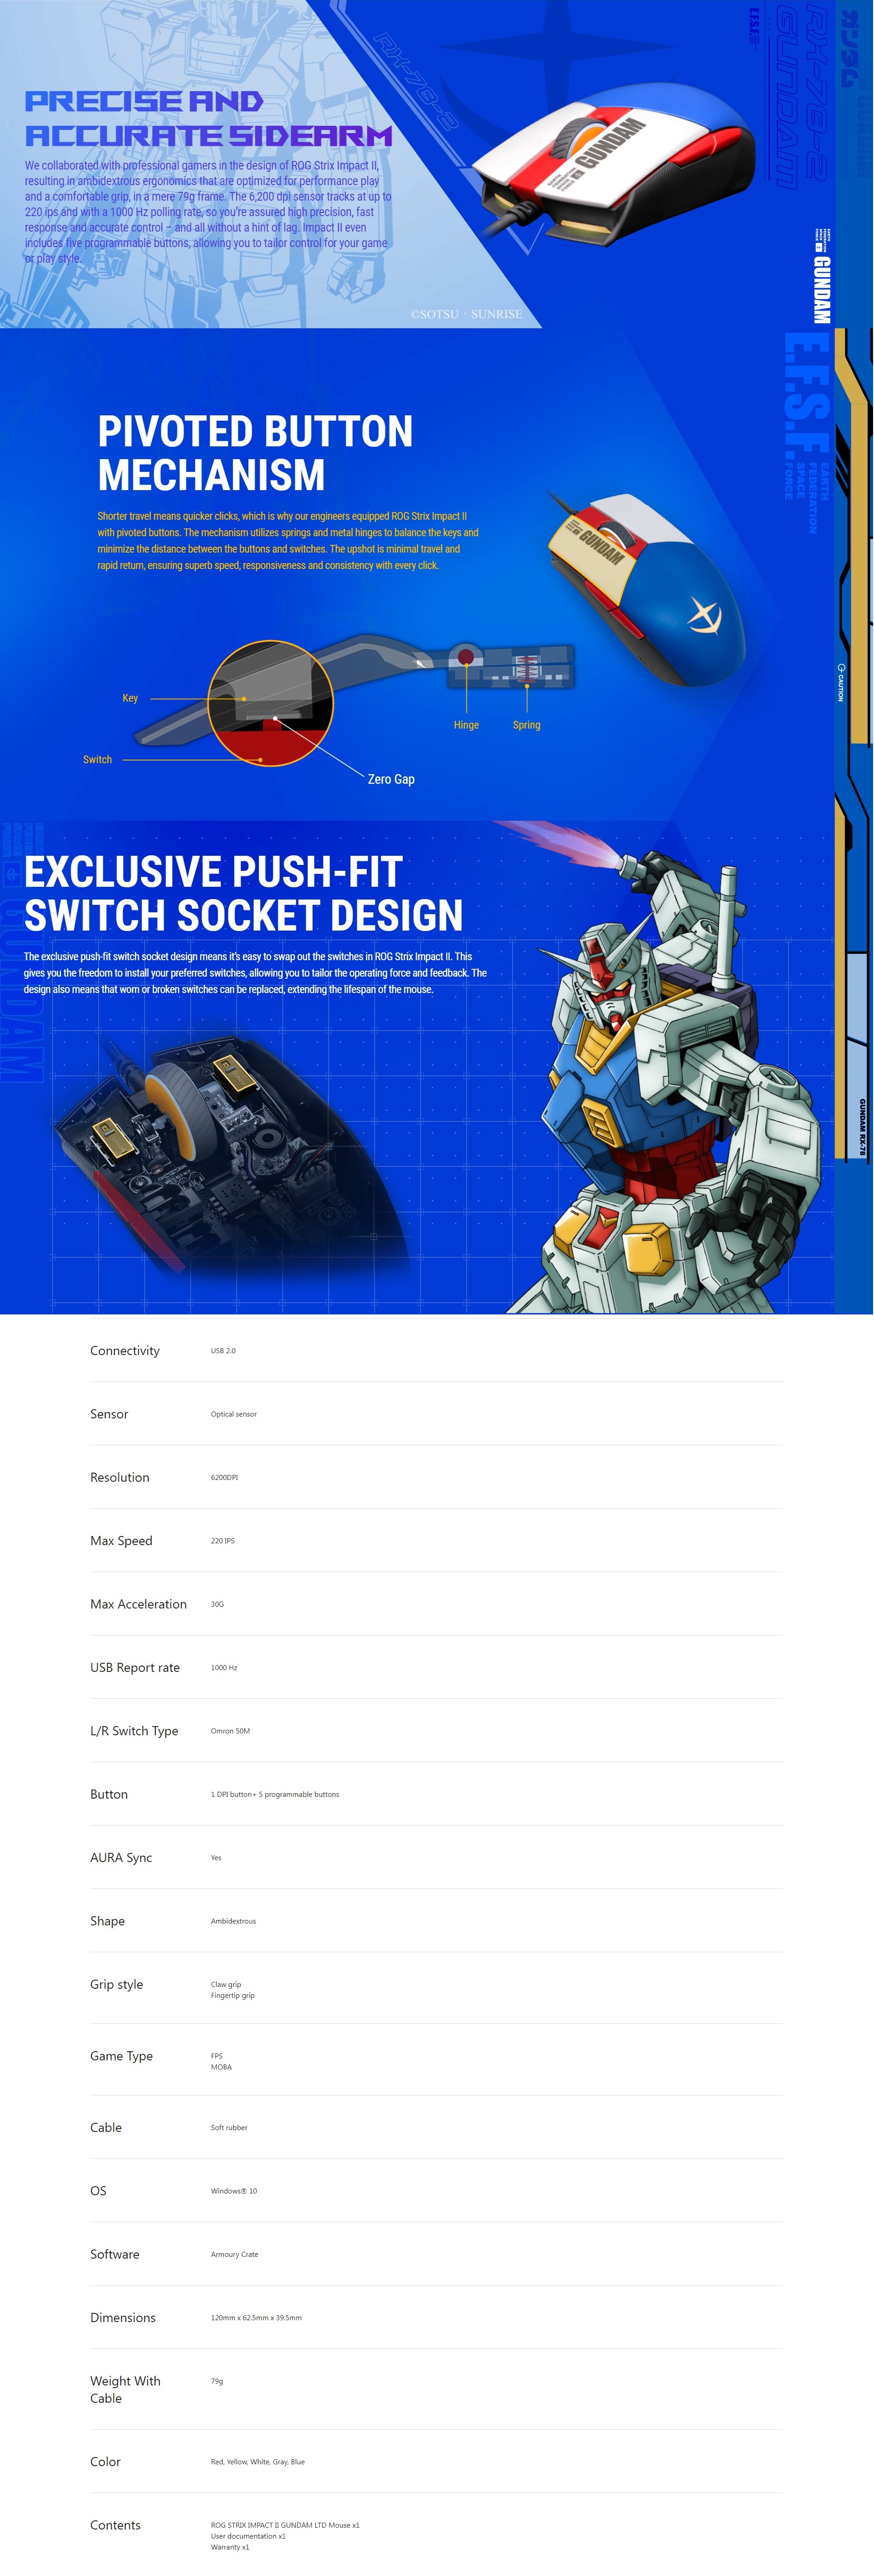 A large marketing image providing additional information about the product ASUS ROG Strix Impact II Ambidextrous Lightweight Gaming Mouse - Gundam - Additional alt info not provided